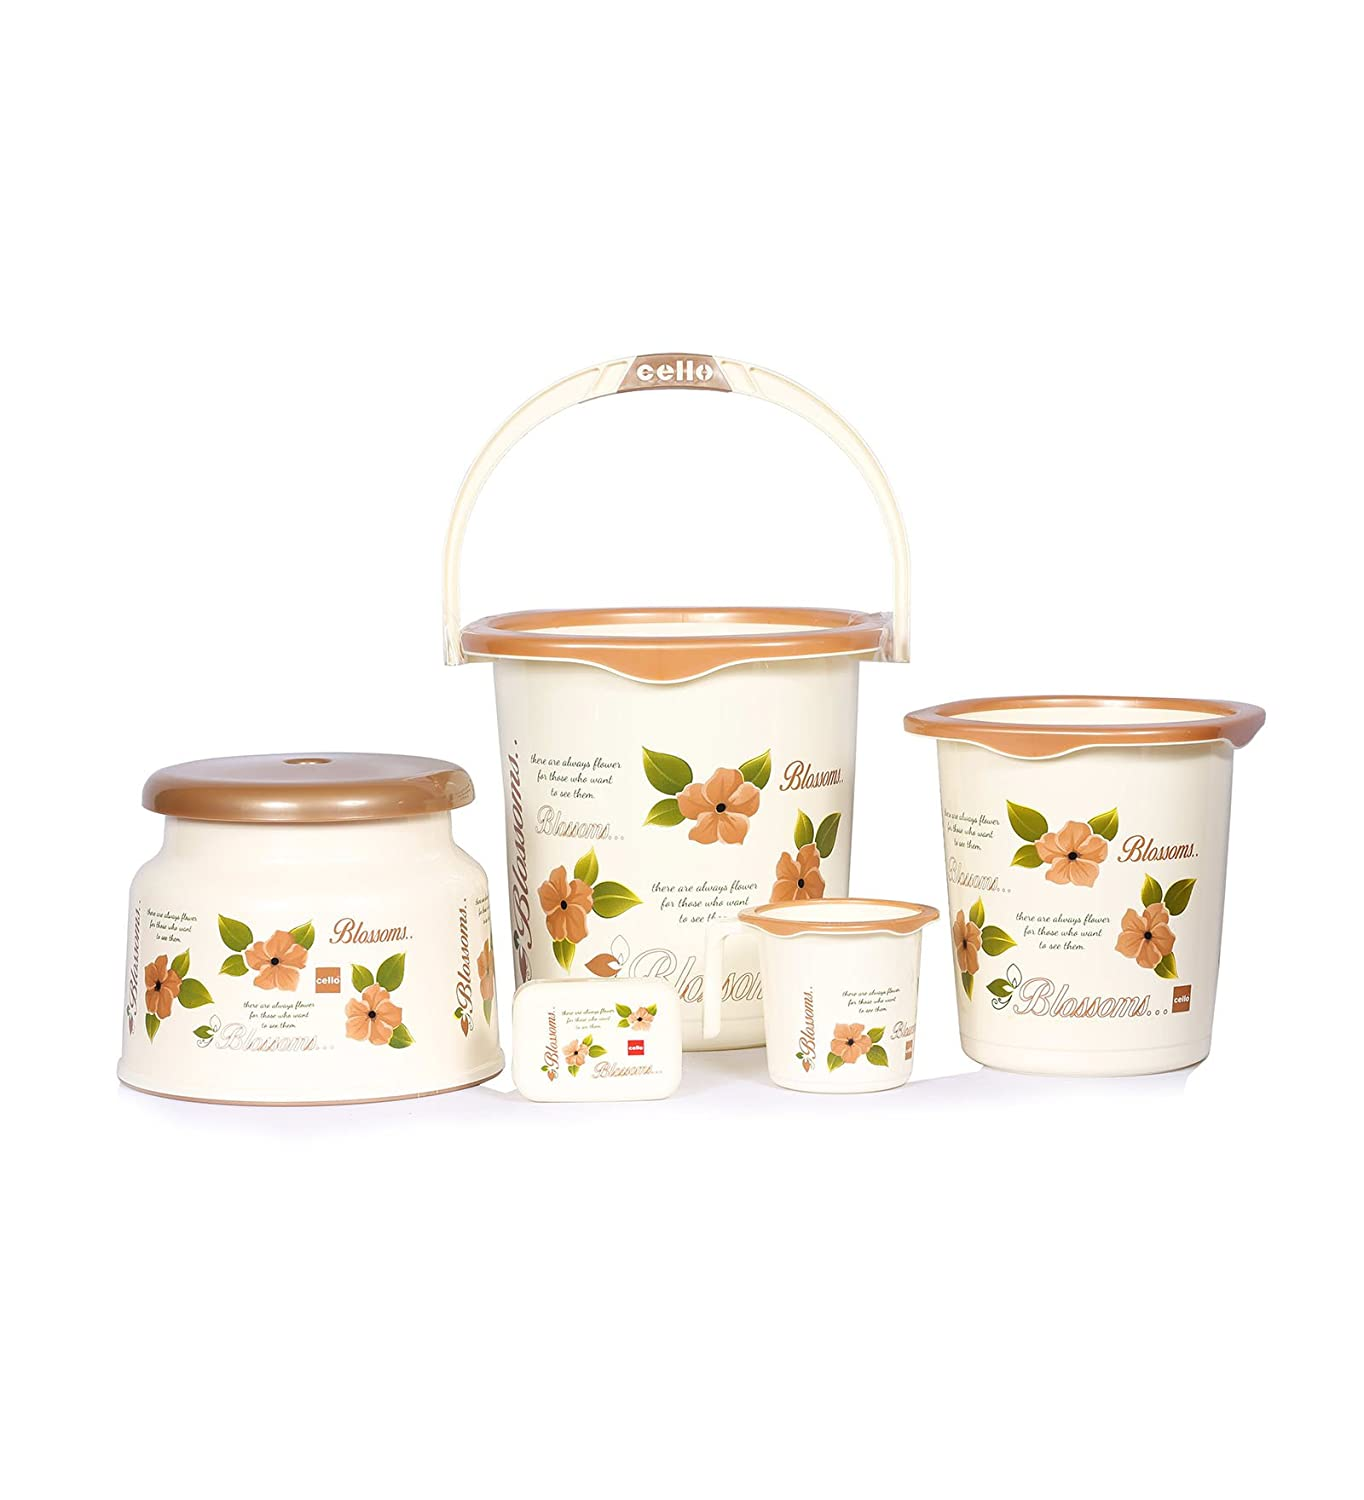 Cello Blossom 5 Piece Plastic Bath Set, Small, Brown